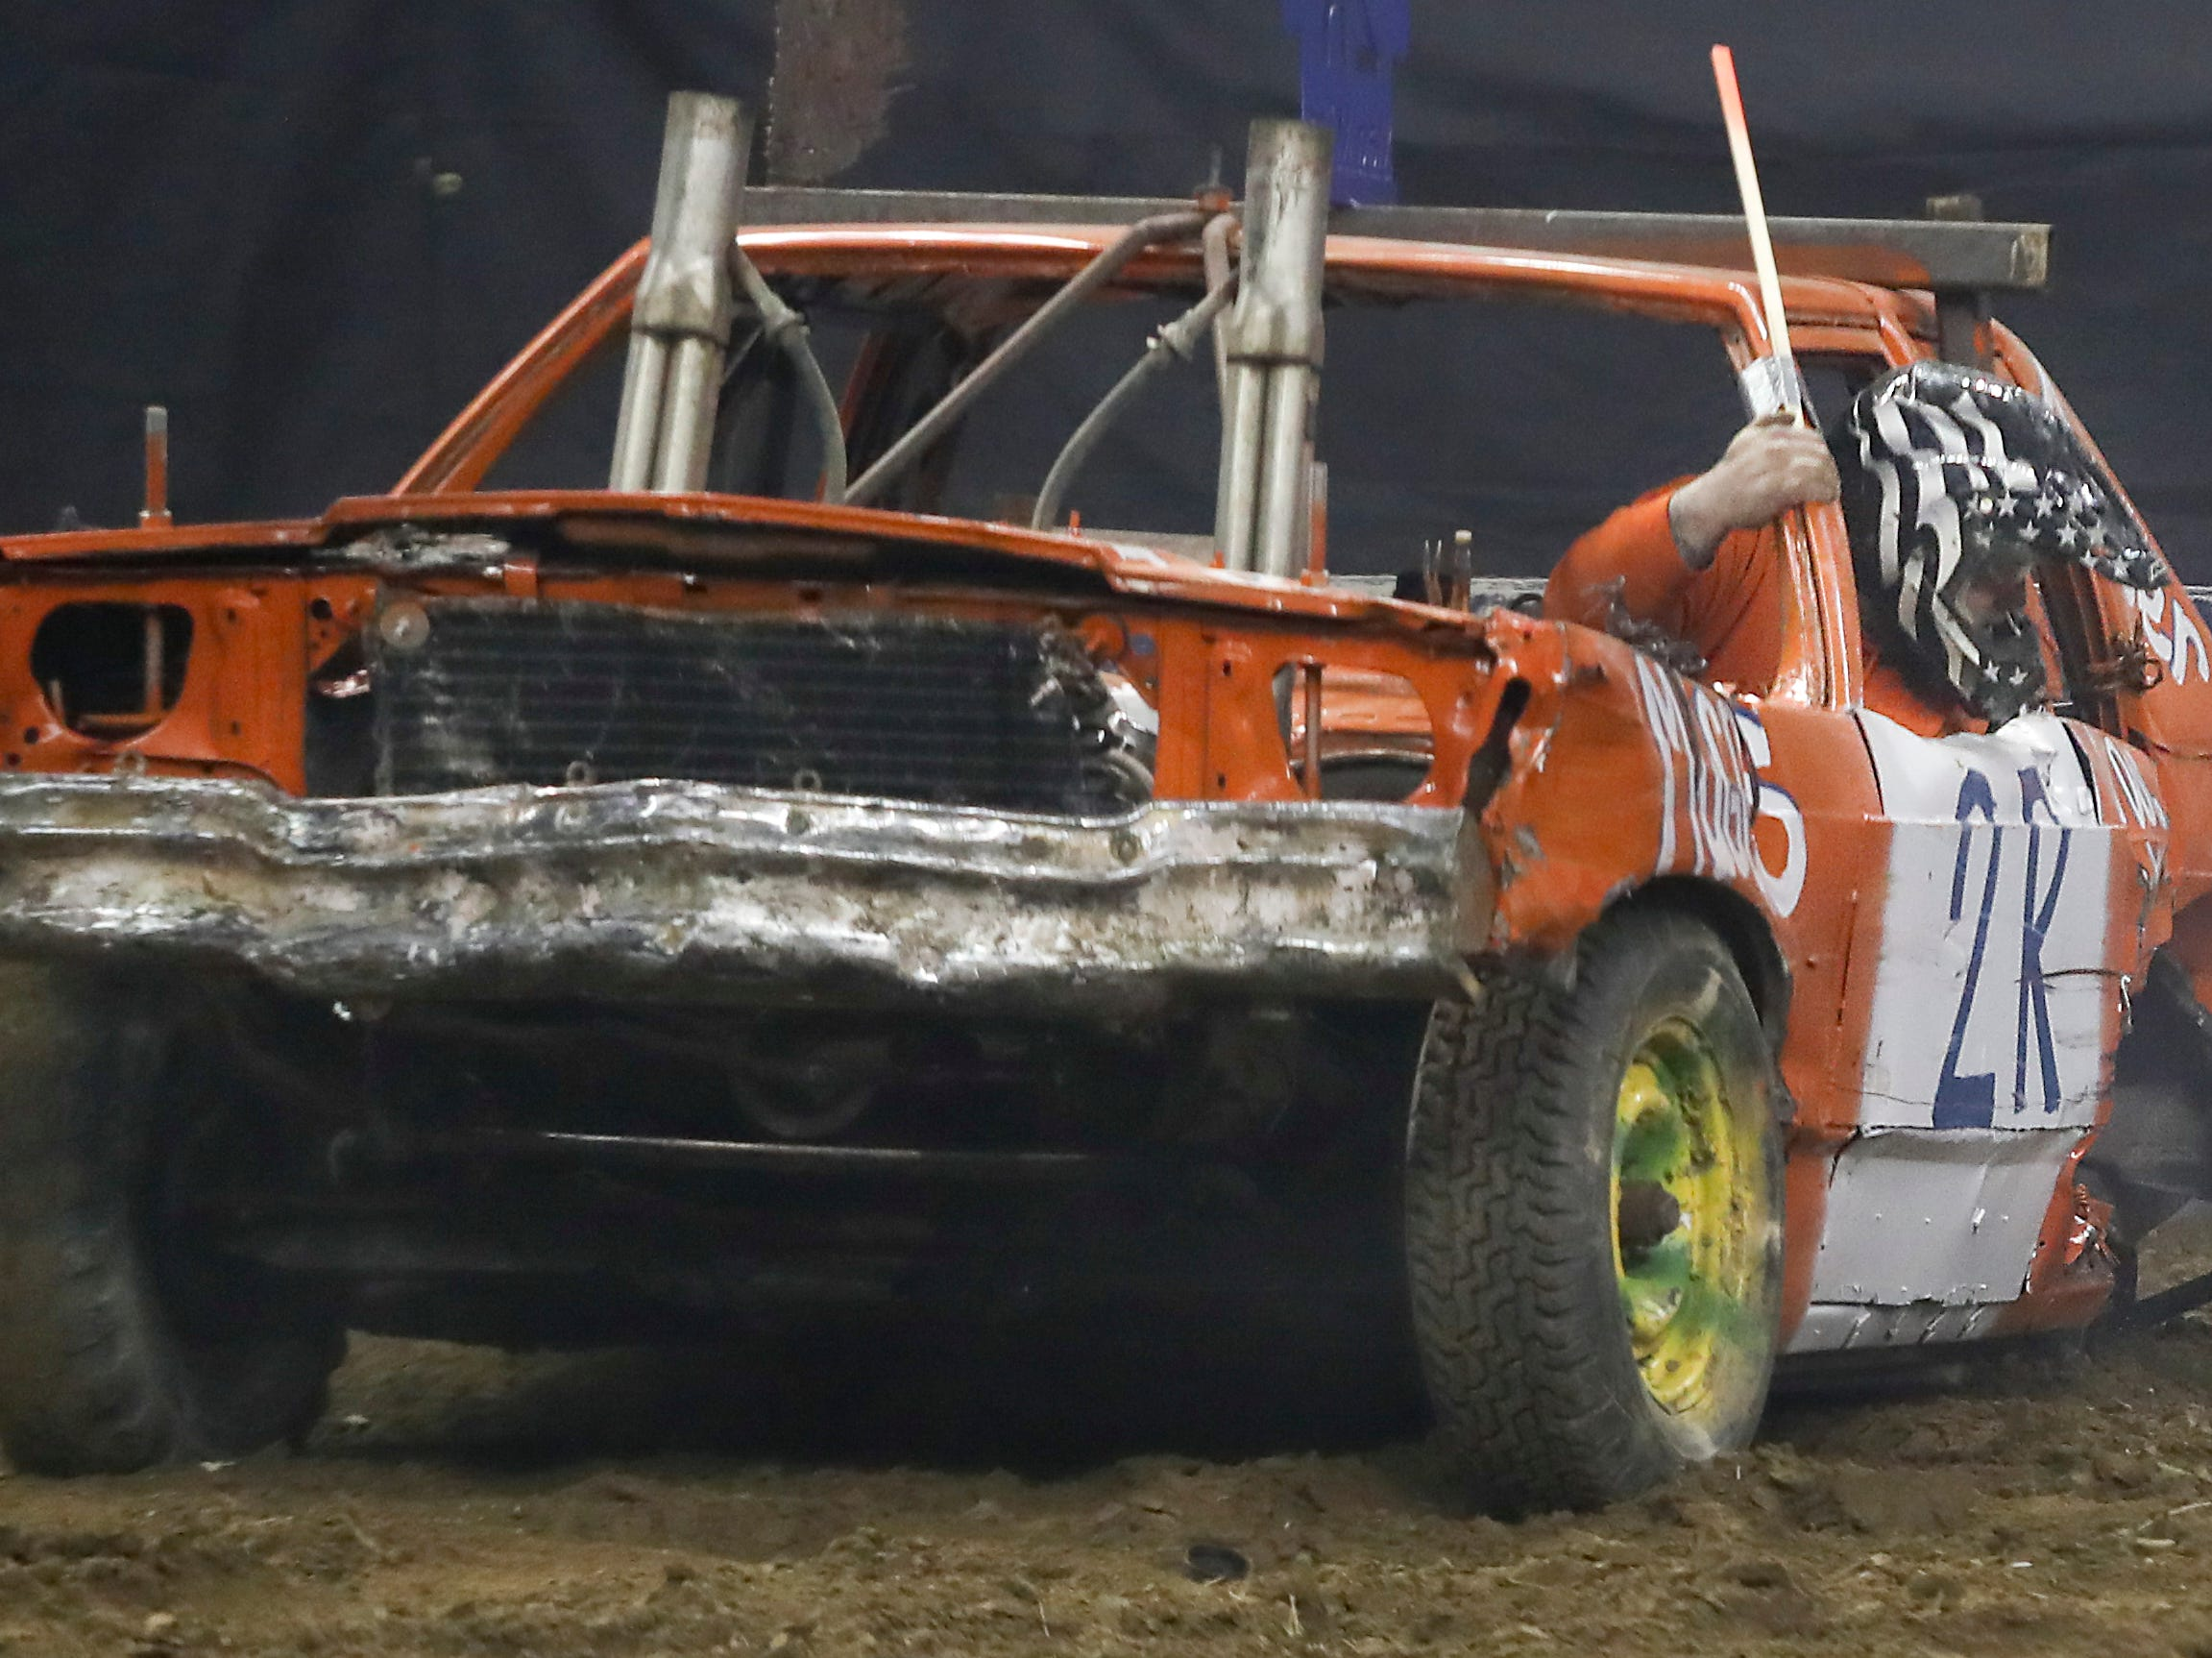 Engines and axils took a lot of damage at the 4th annual Bluegrass Bash Demolition Derby in Freedom Hall on March 23.